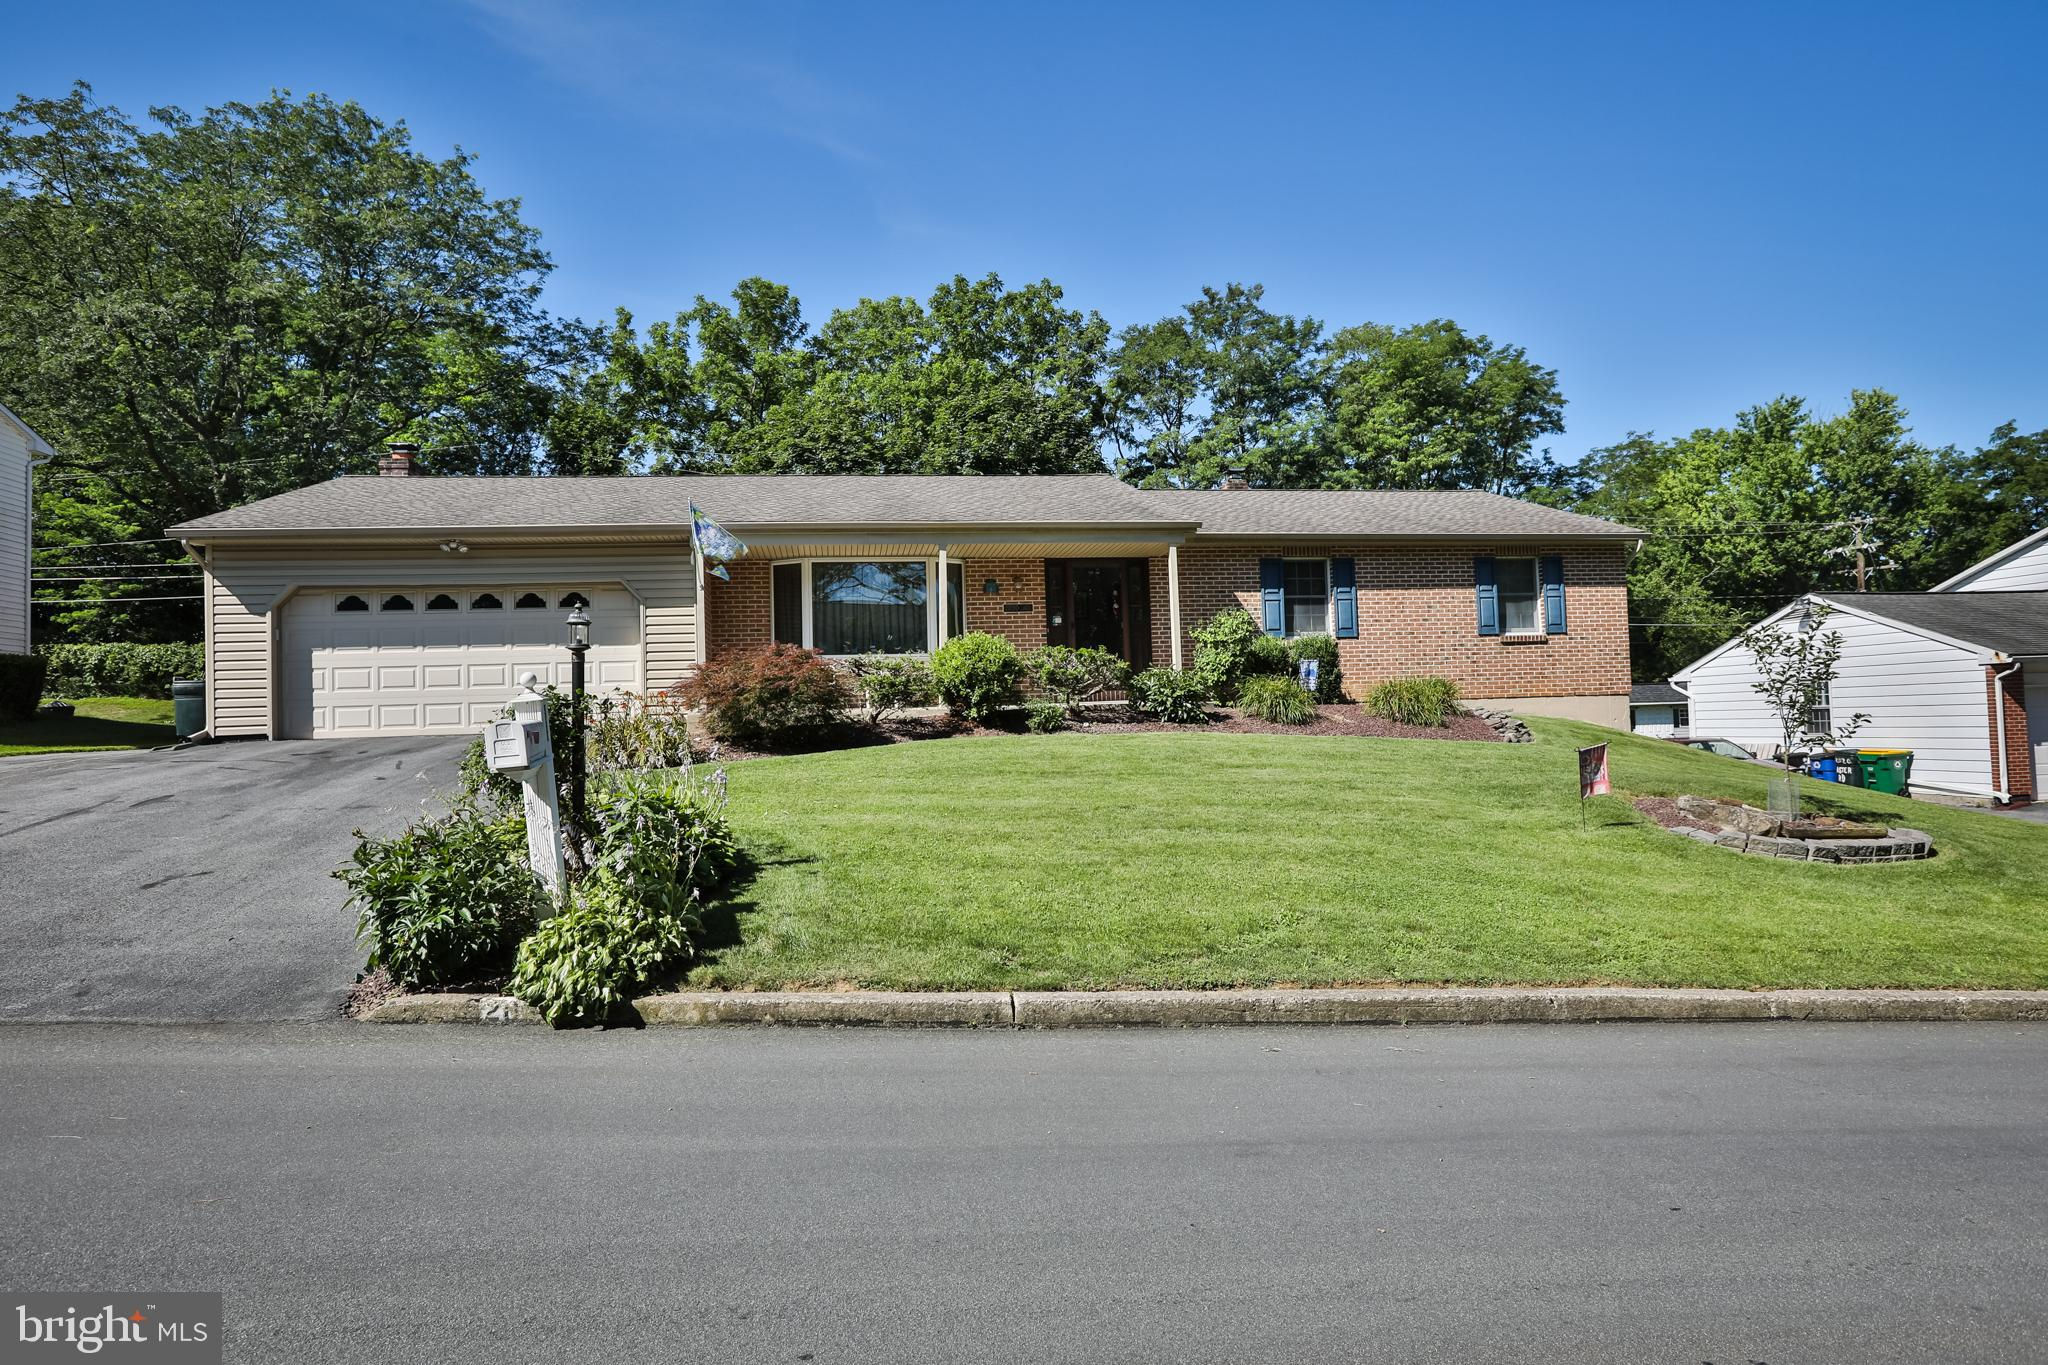 2030 ASTER ROAD, MACUNGIE, PA 18062